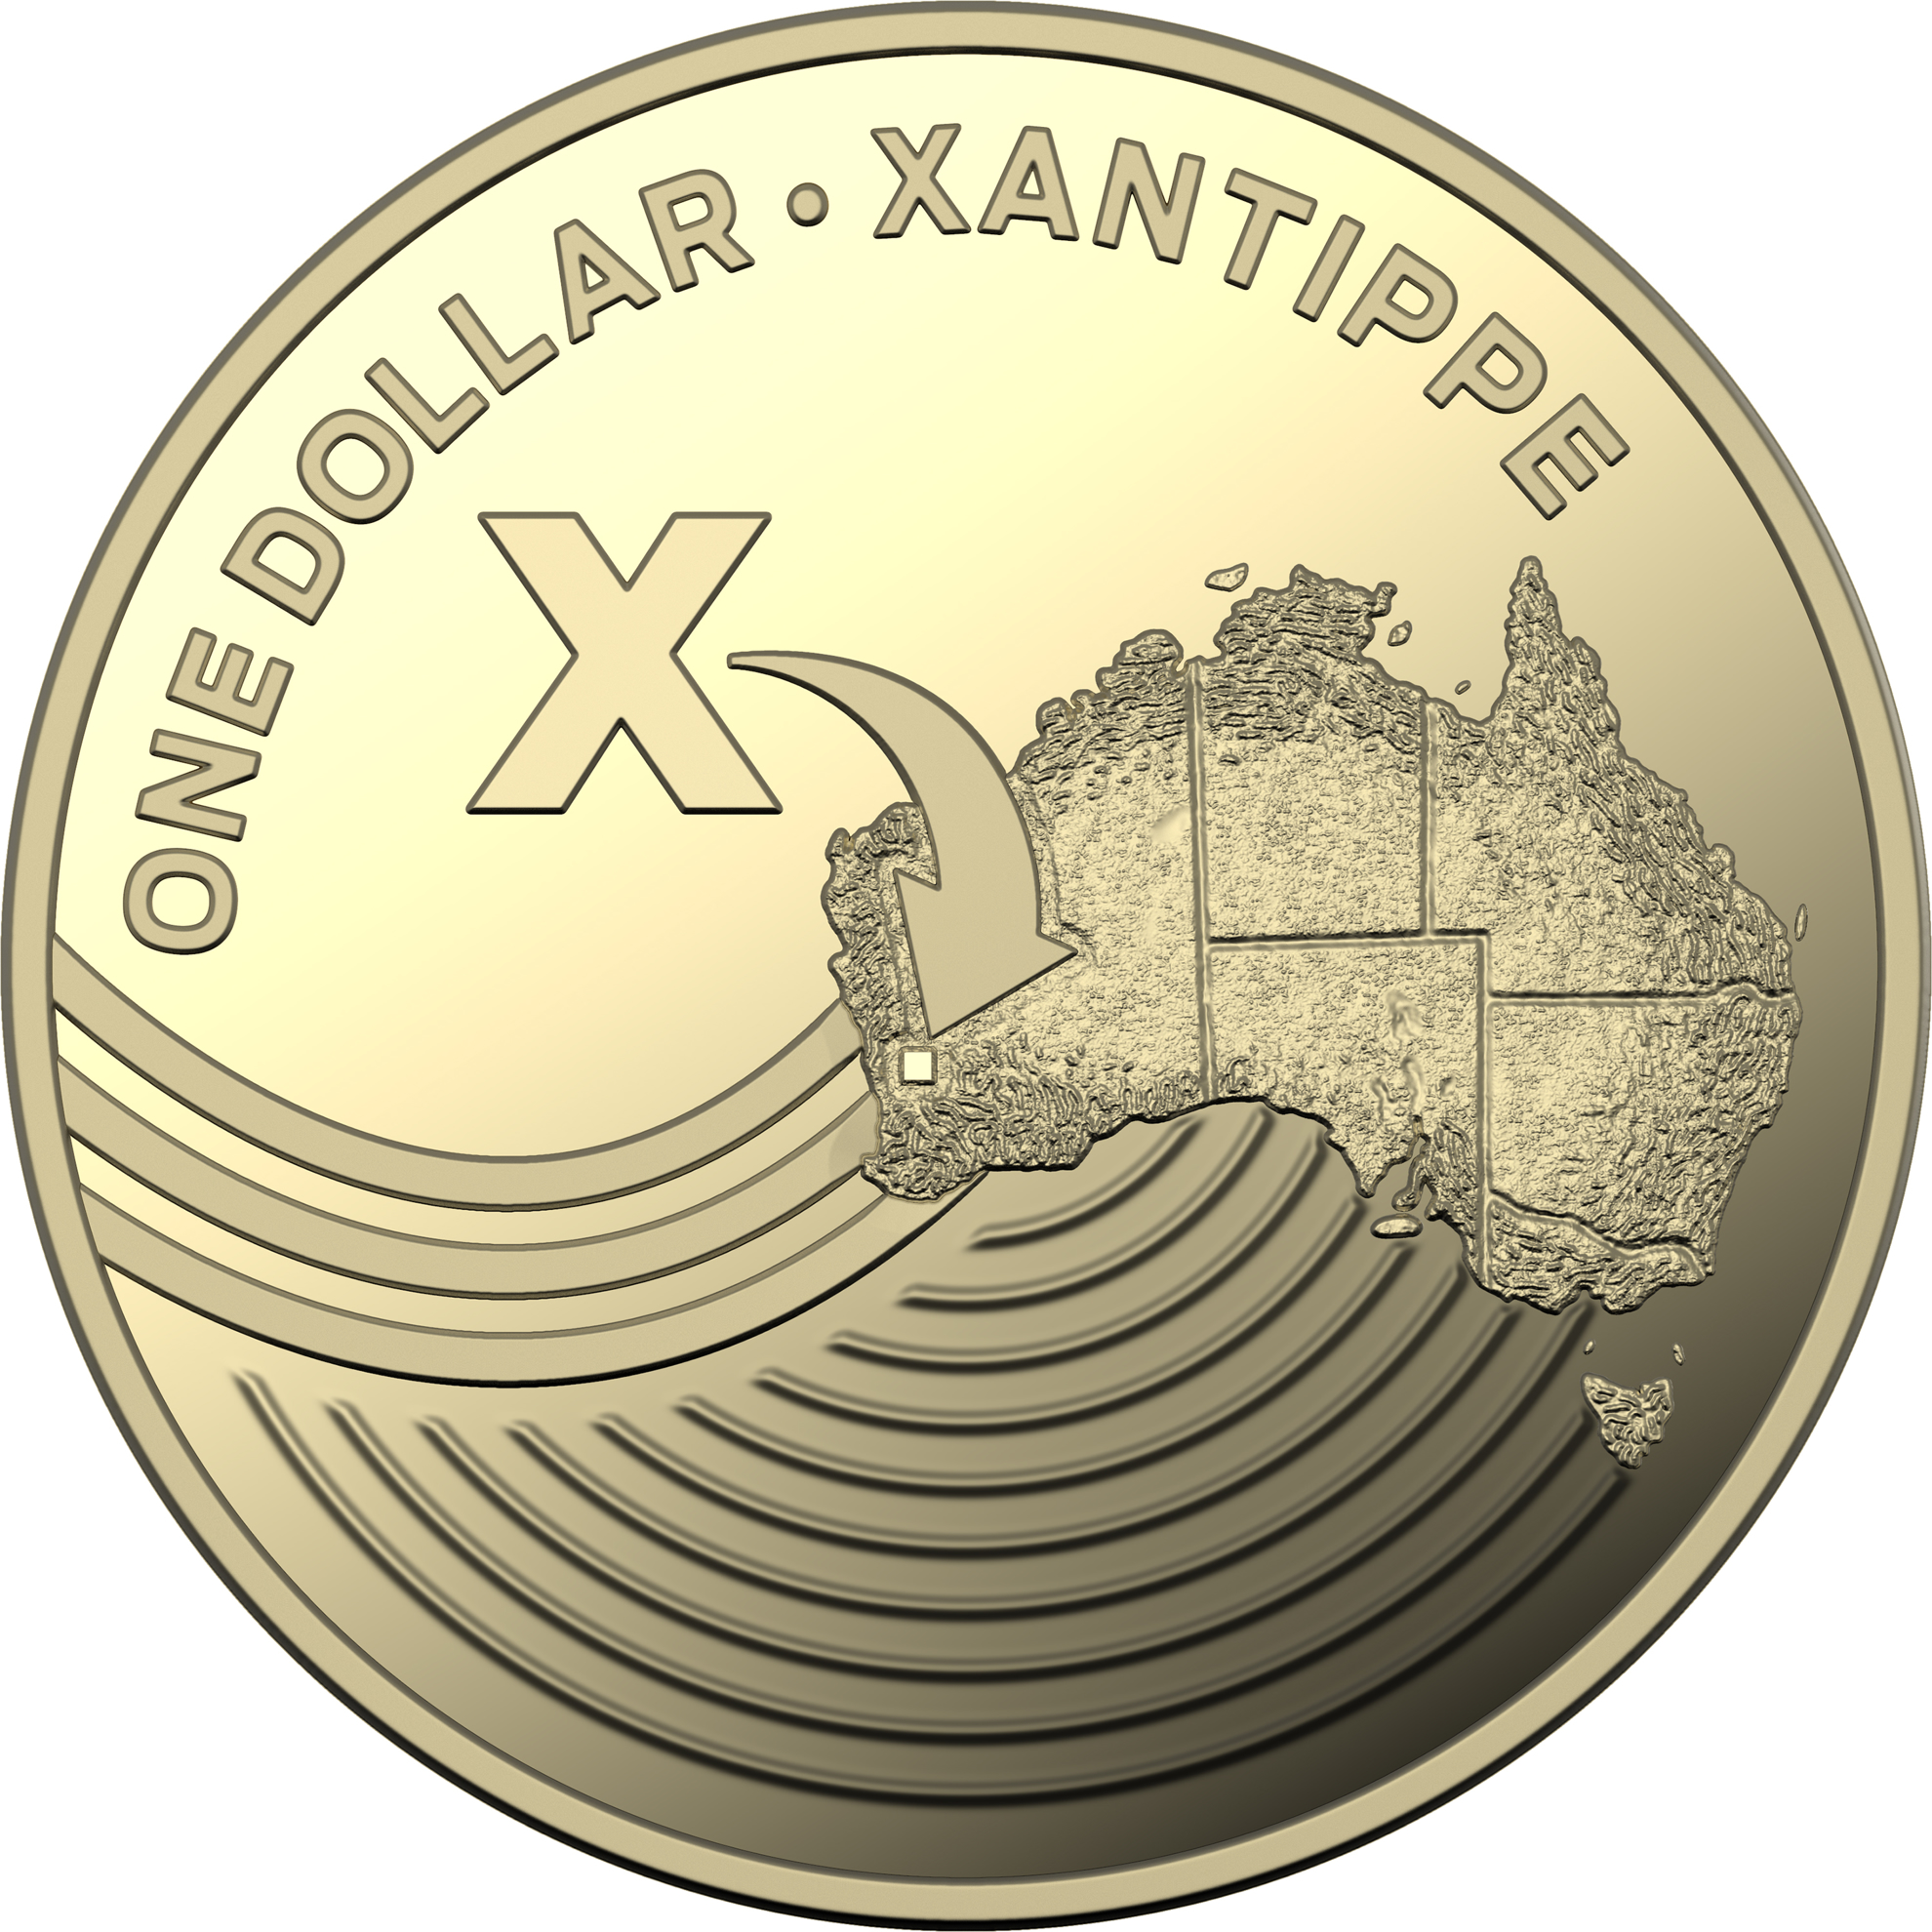 One Dollar 2019 X - Xantippe: Photo 2019 $1 Proof Coin Collection - Xantippe